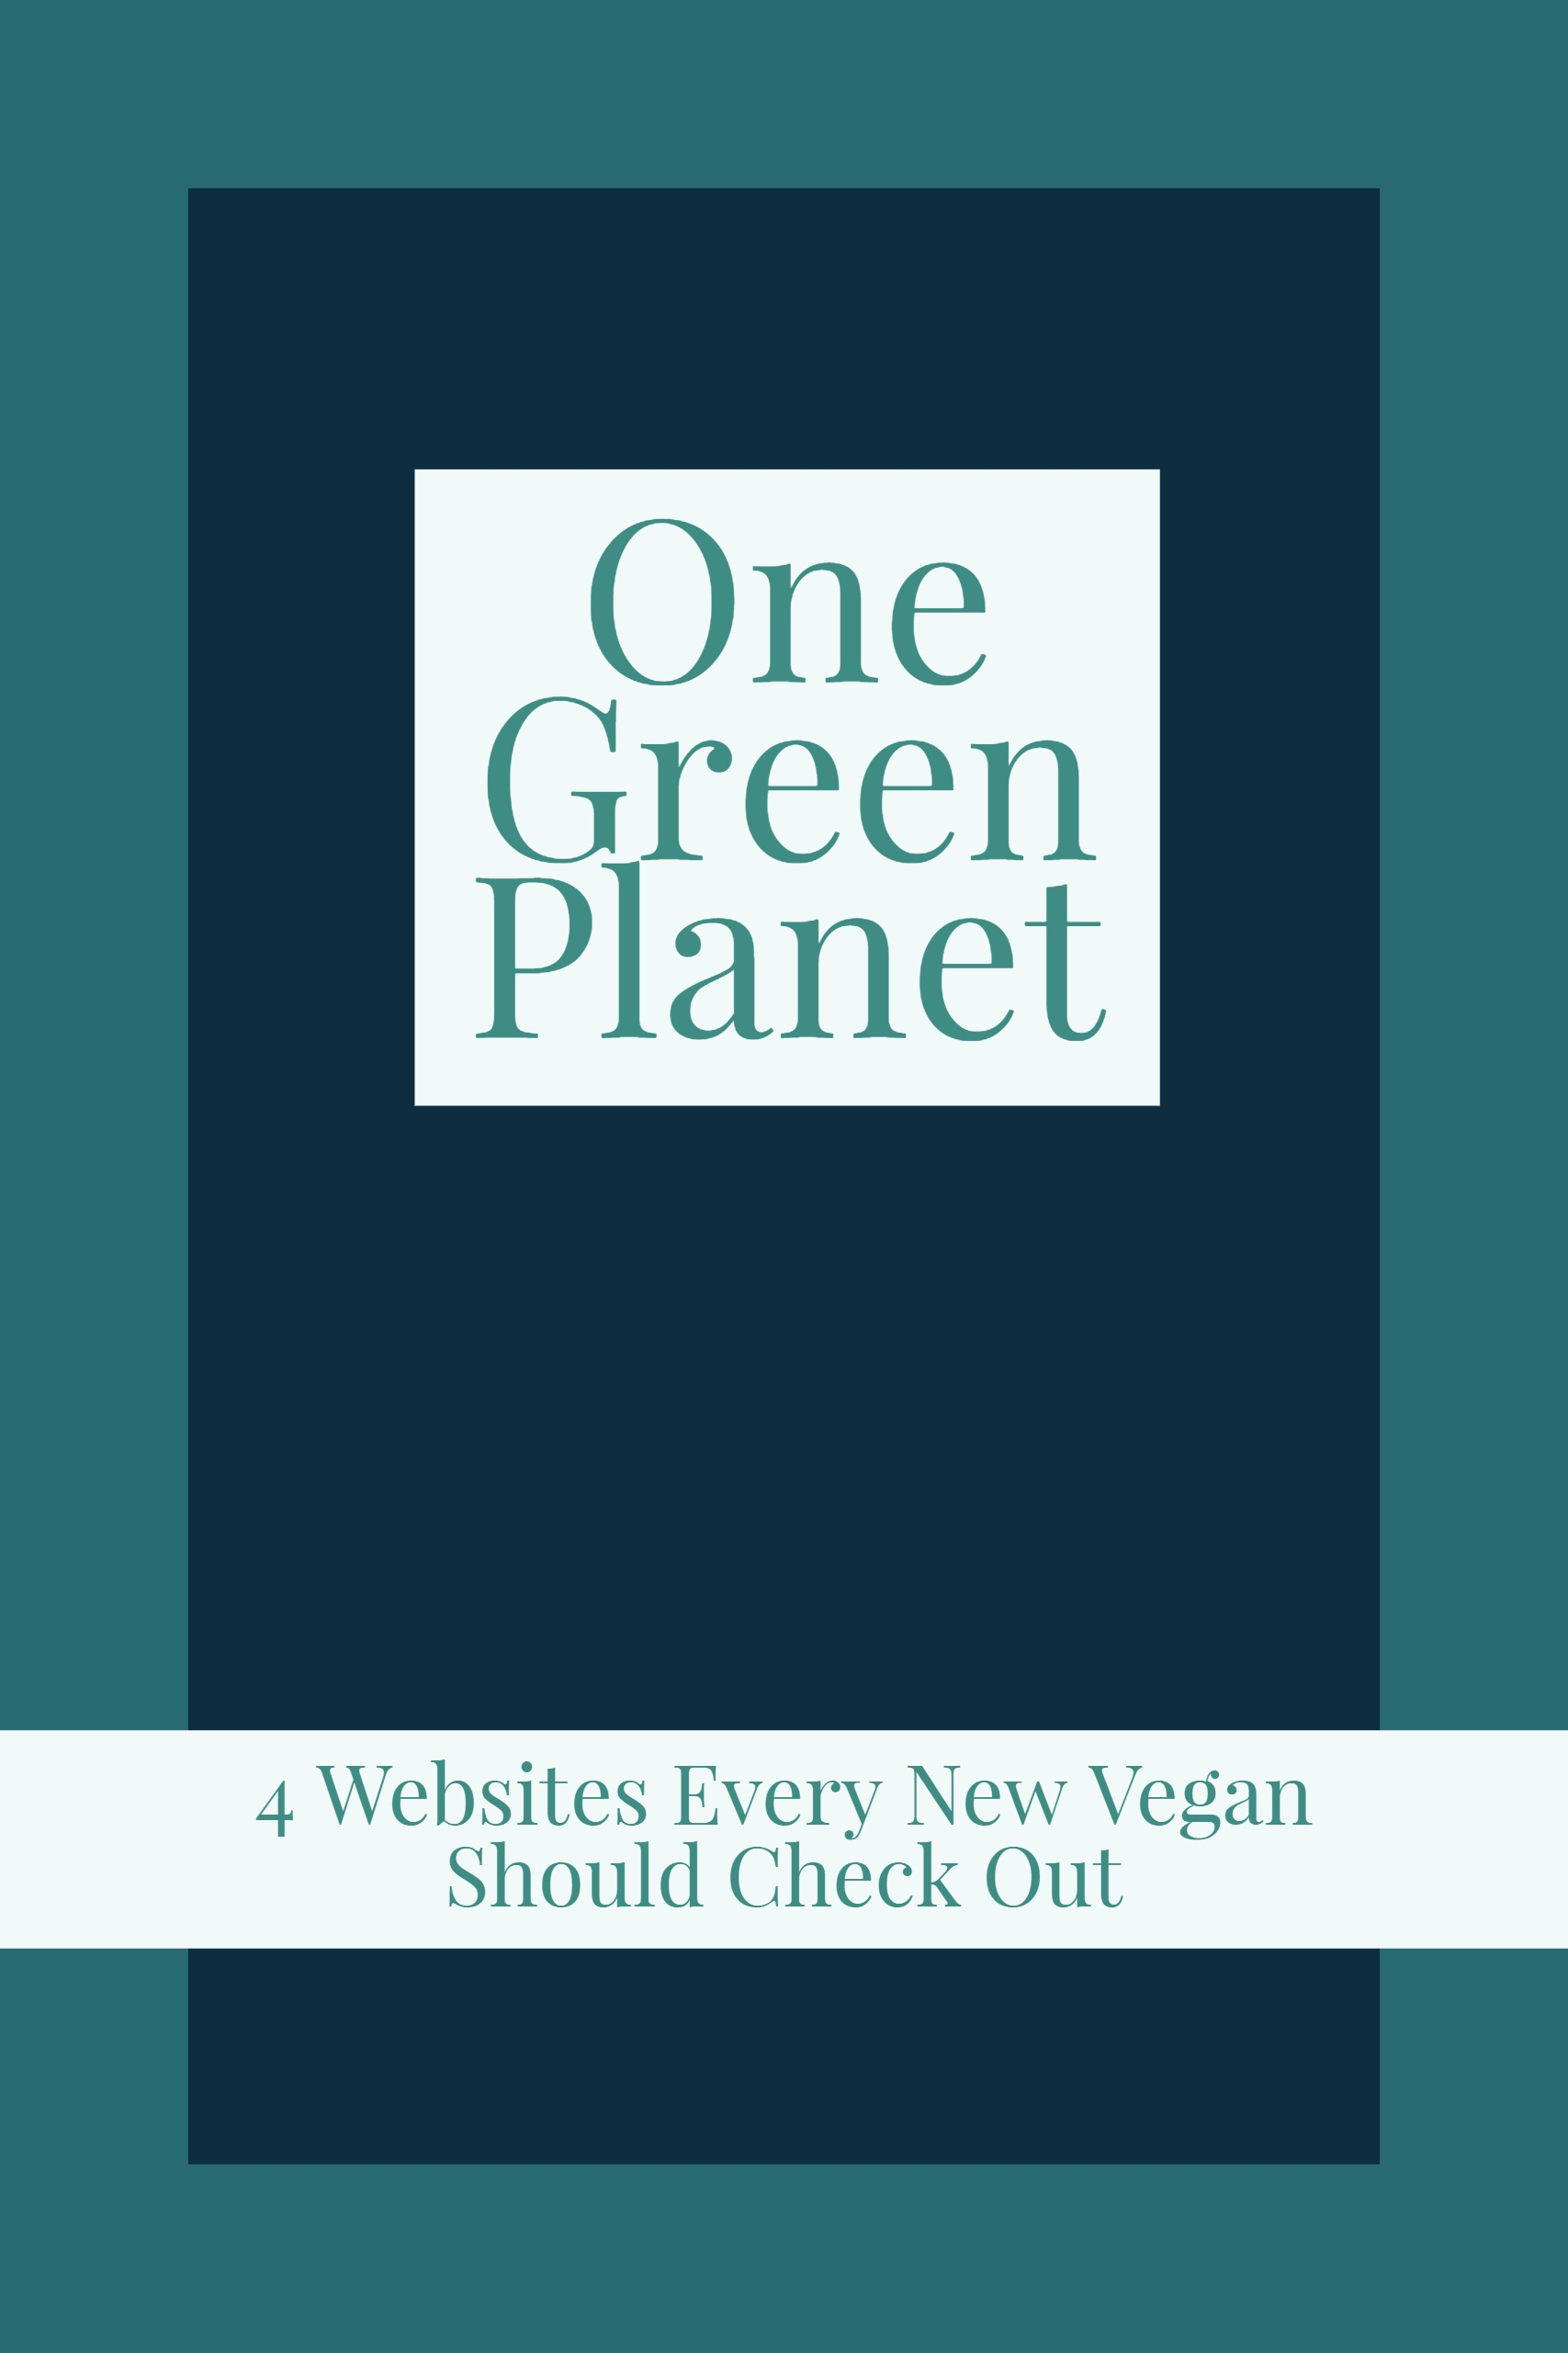 4 Websites Every New Vegan Should Check Out